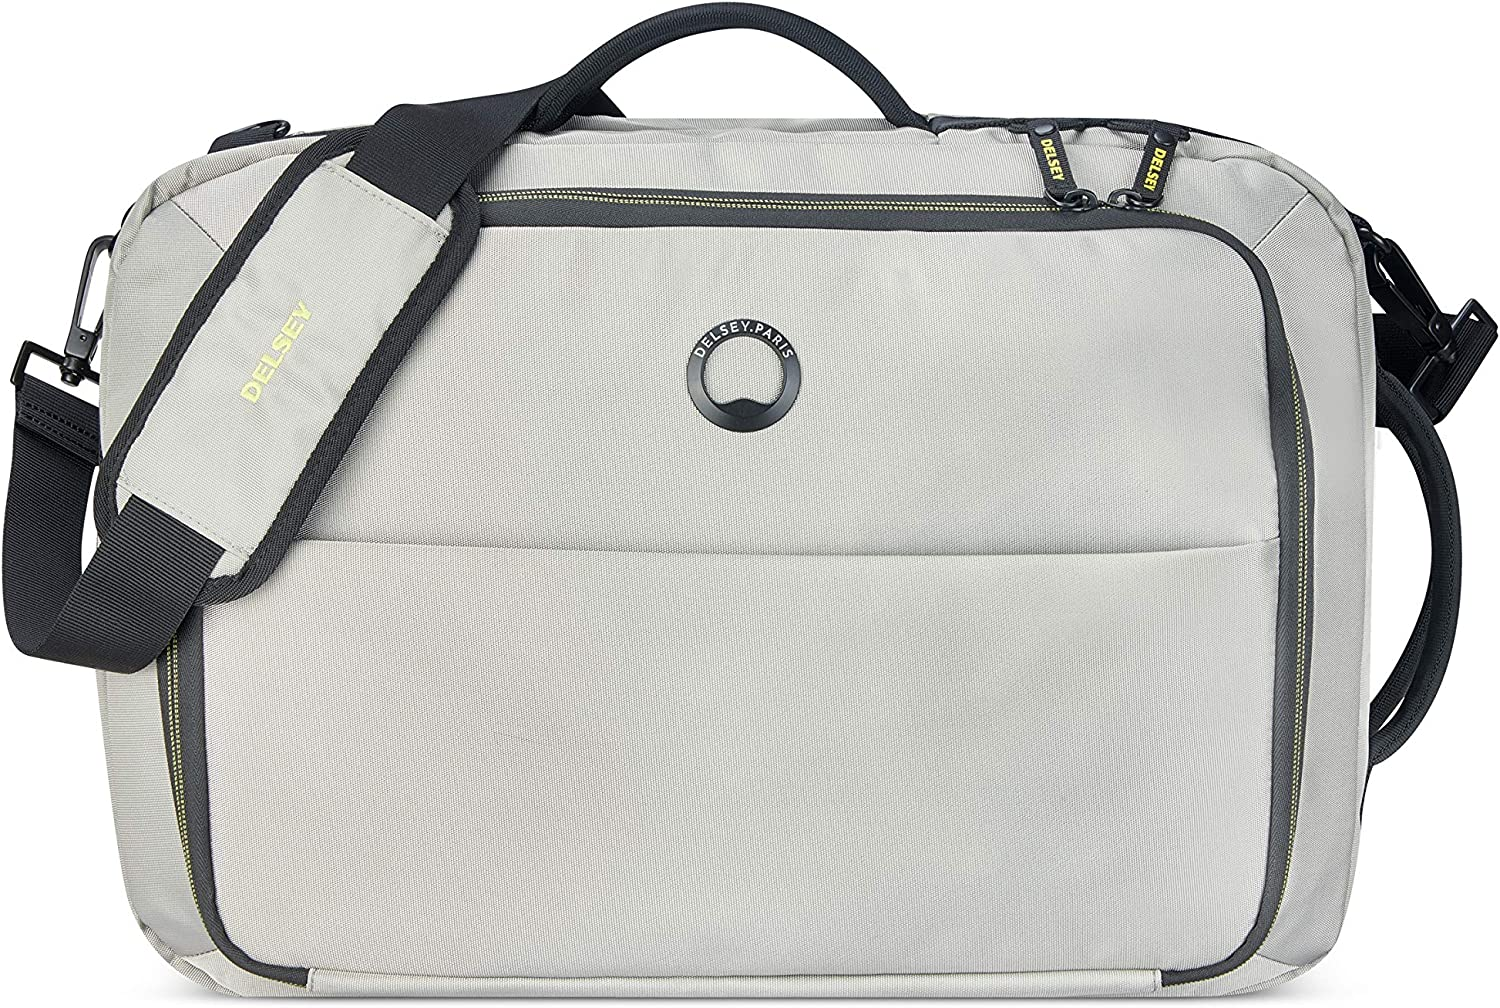 DELSEY Paris Daily's Two Compartment Laptop Messenger Shoulder Bag, Light Gray, 15.6 Inch Sleeve